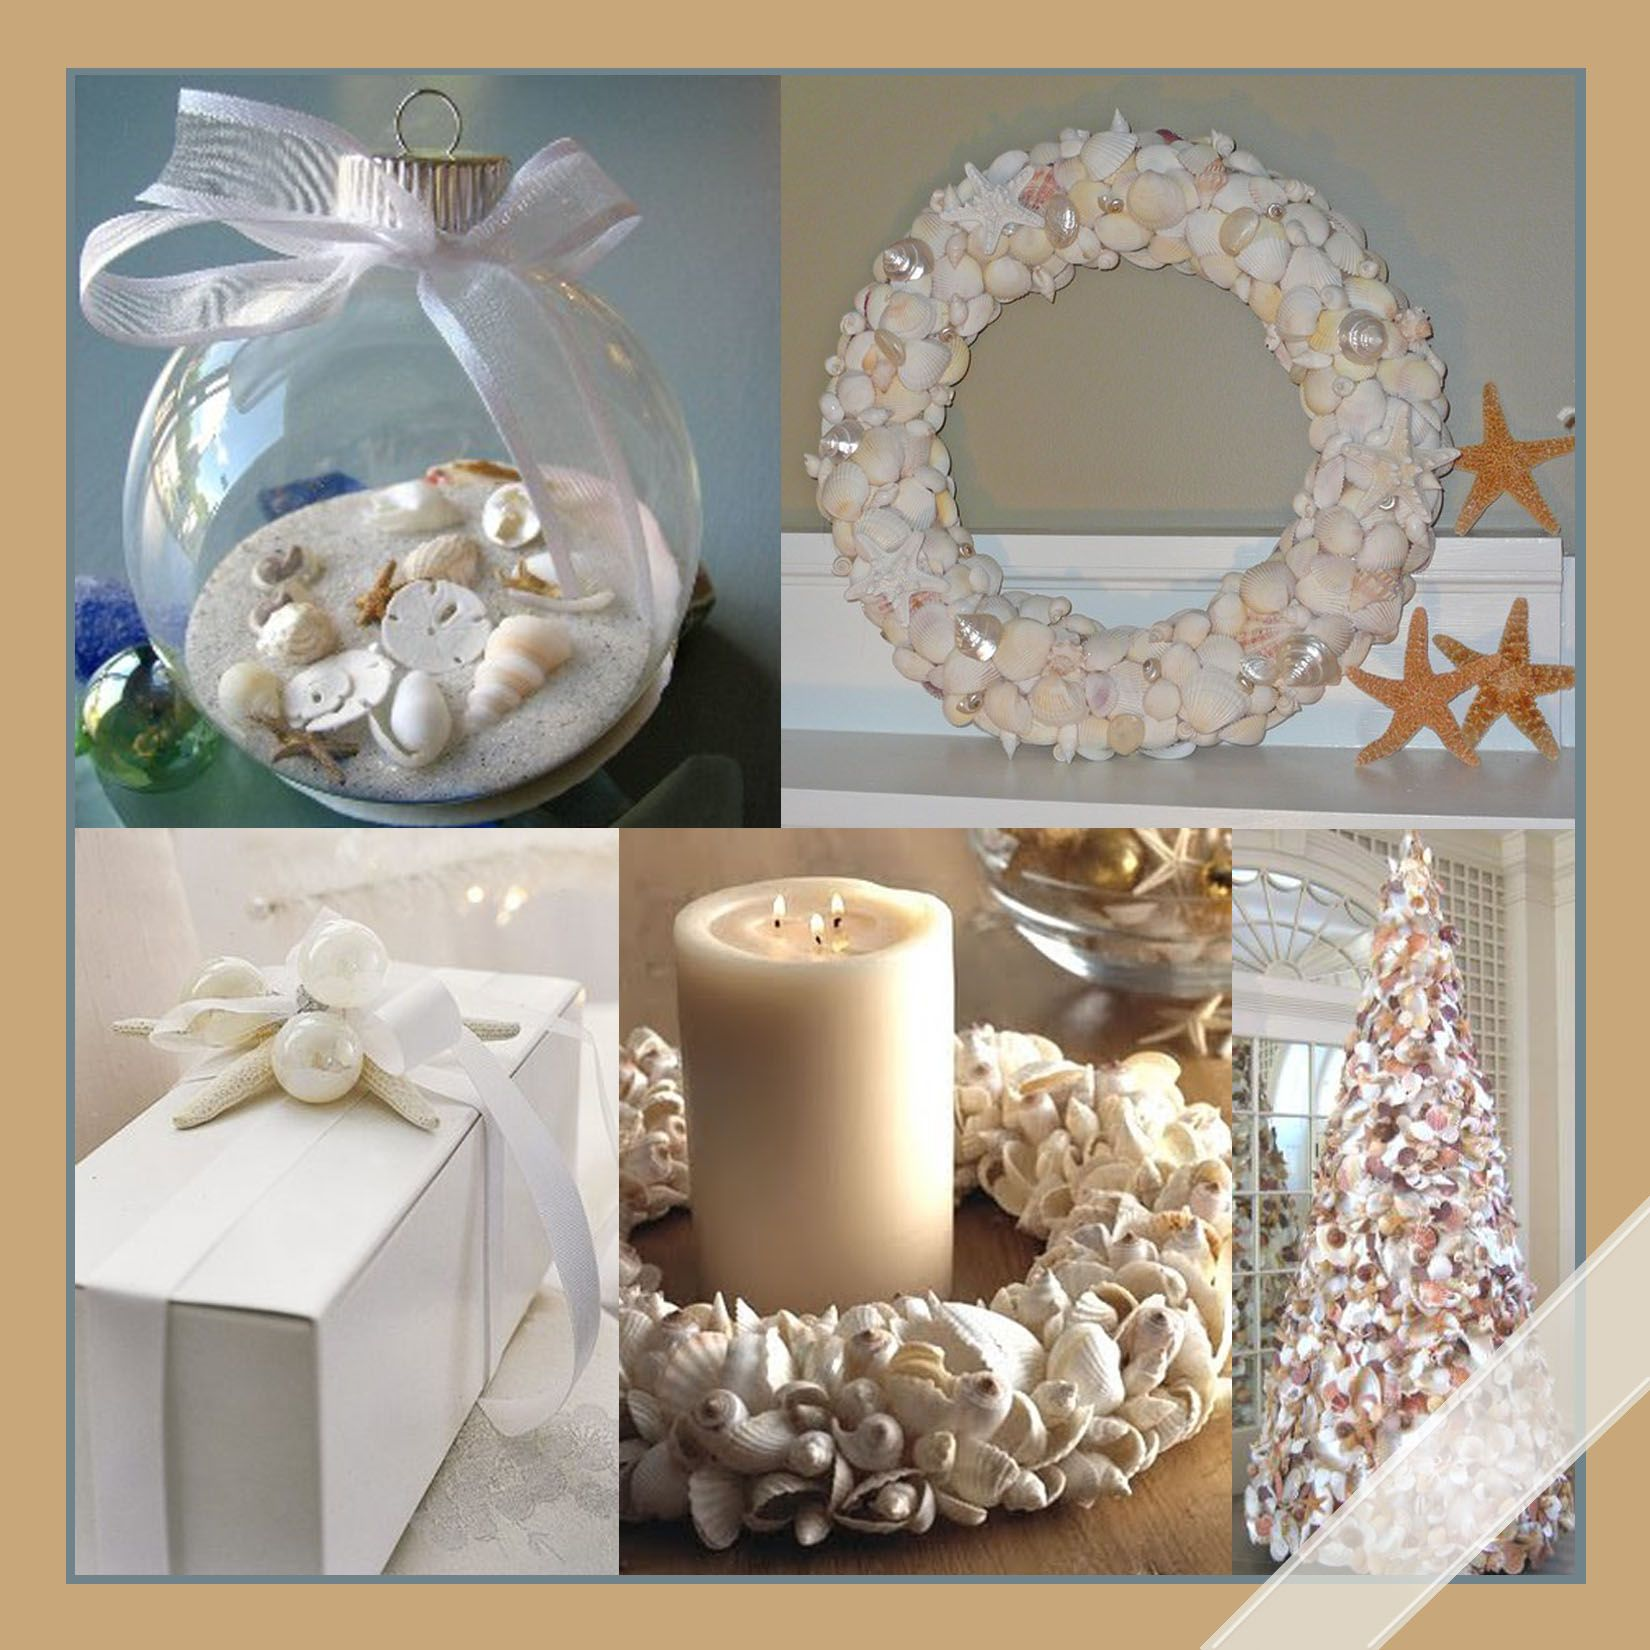 beach items for decorating beach theme christmas decor ideas - Beach Theme Decor